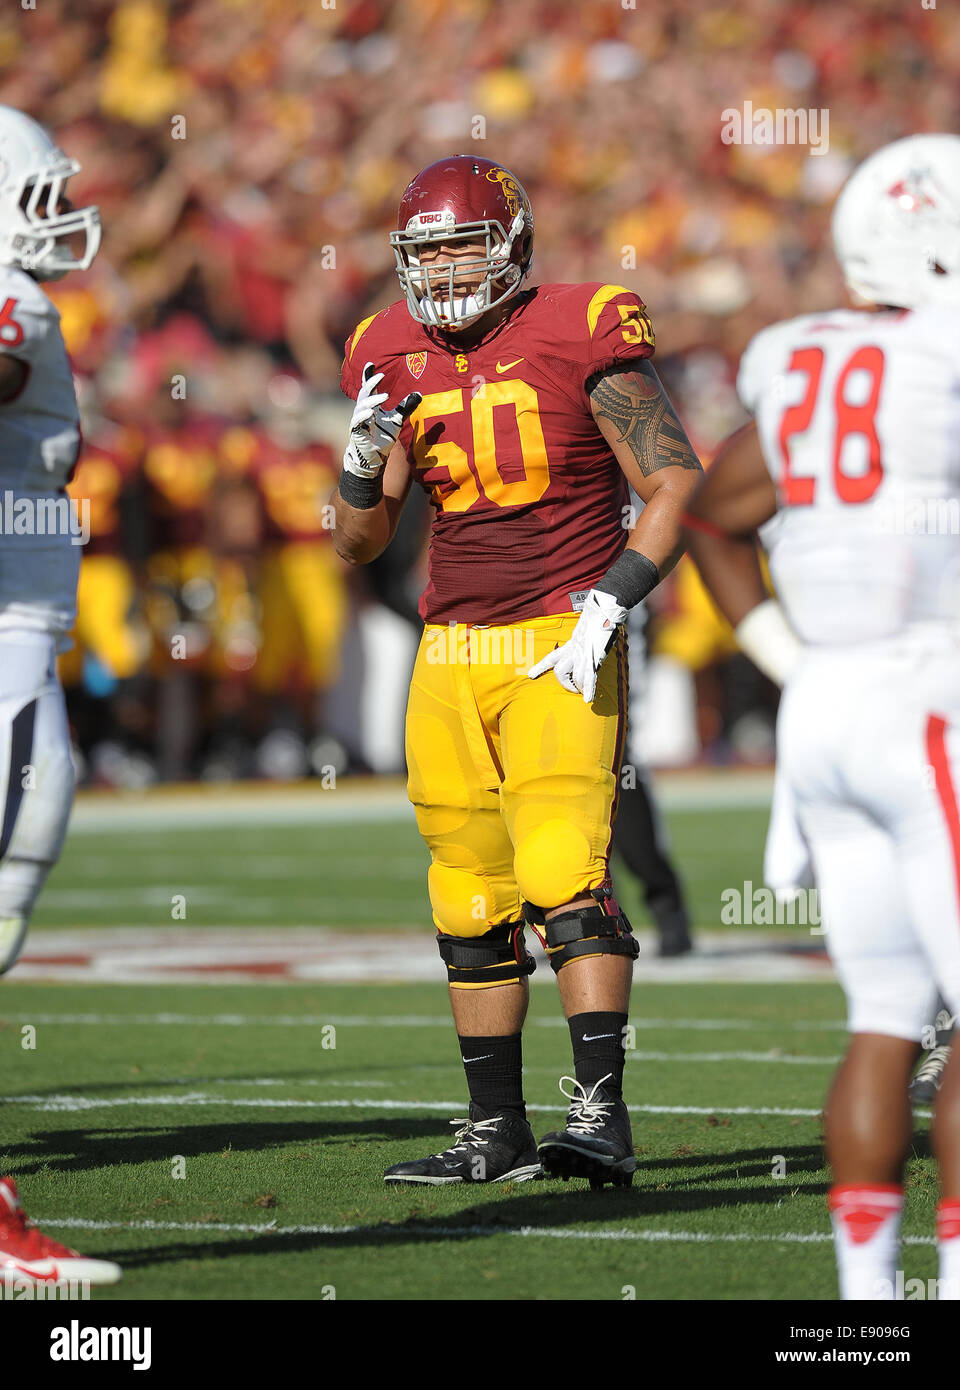 August 30, 2014, Los Angeles, CA...USC Trojans offensive guard (50) Toa Lobendahn in action beating the Fresno State - Stock Image